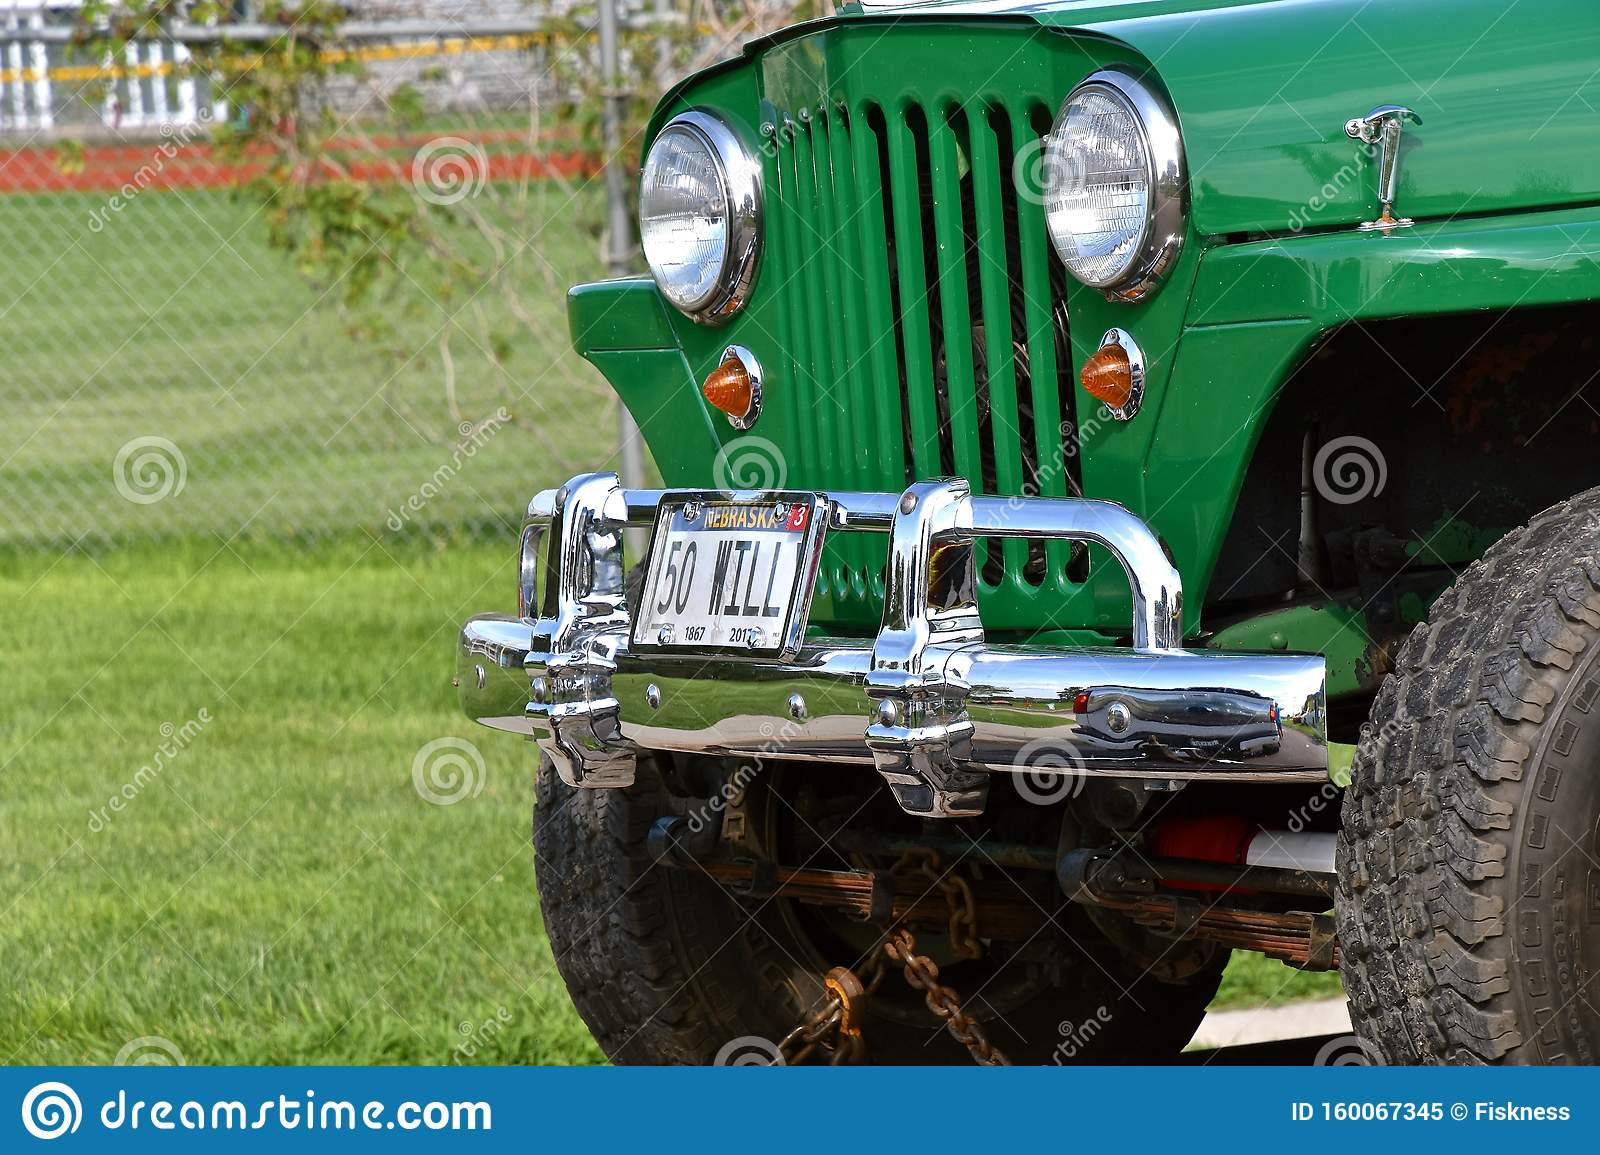 655 Willys Jeep Photos Free Royalty Free Stock Photos From Dreamstime